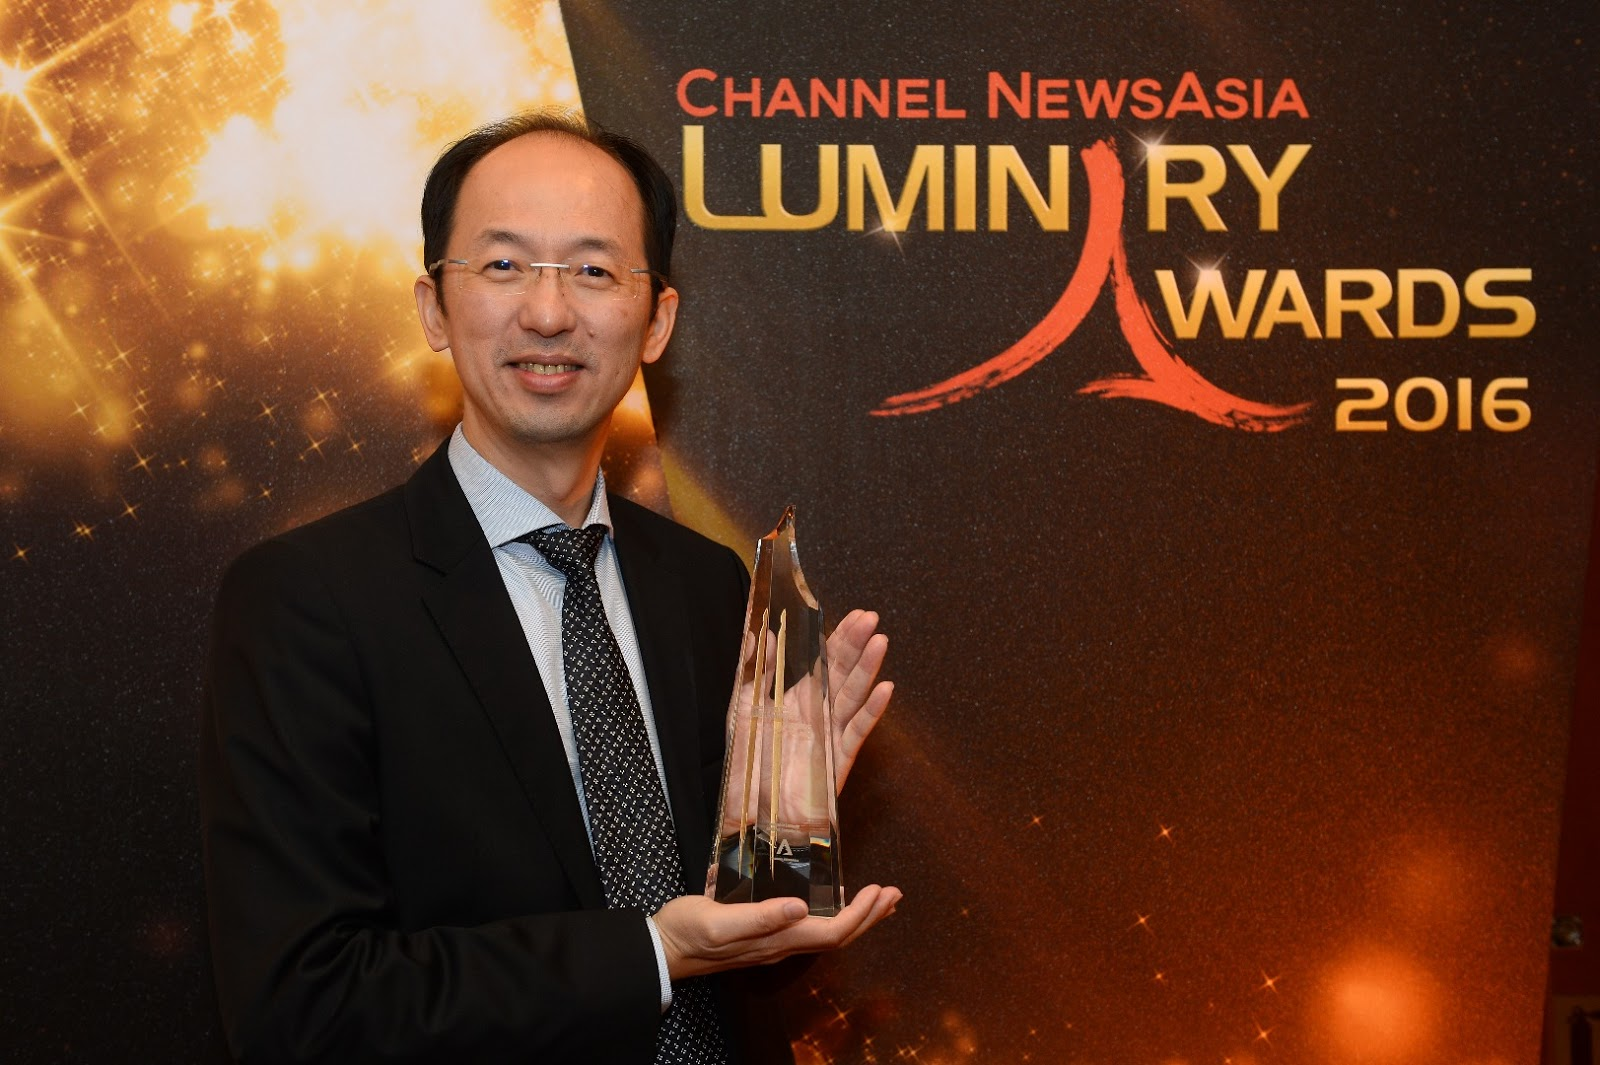 ASUS Wins 2016 Channel NewsAsia Innovation Luminary Award - The Tech